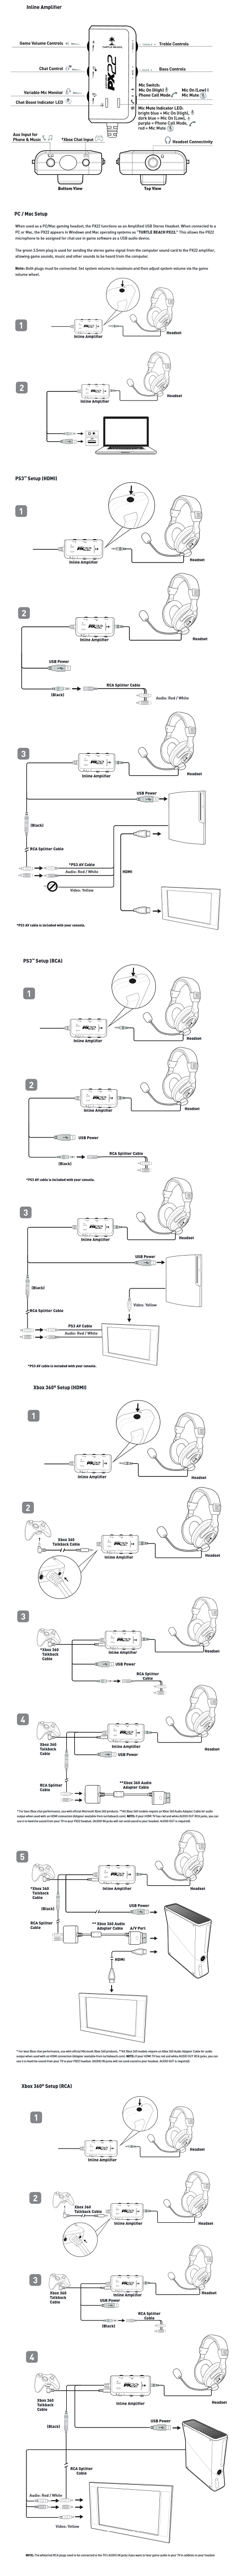 PX22_SETUP turtle beach px22 wiring diagram how to rewire turtle beach Ear Force PX21 at readyjetset.co